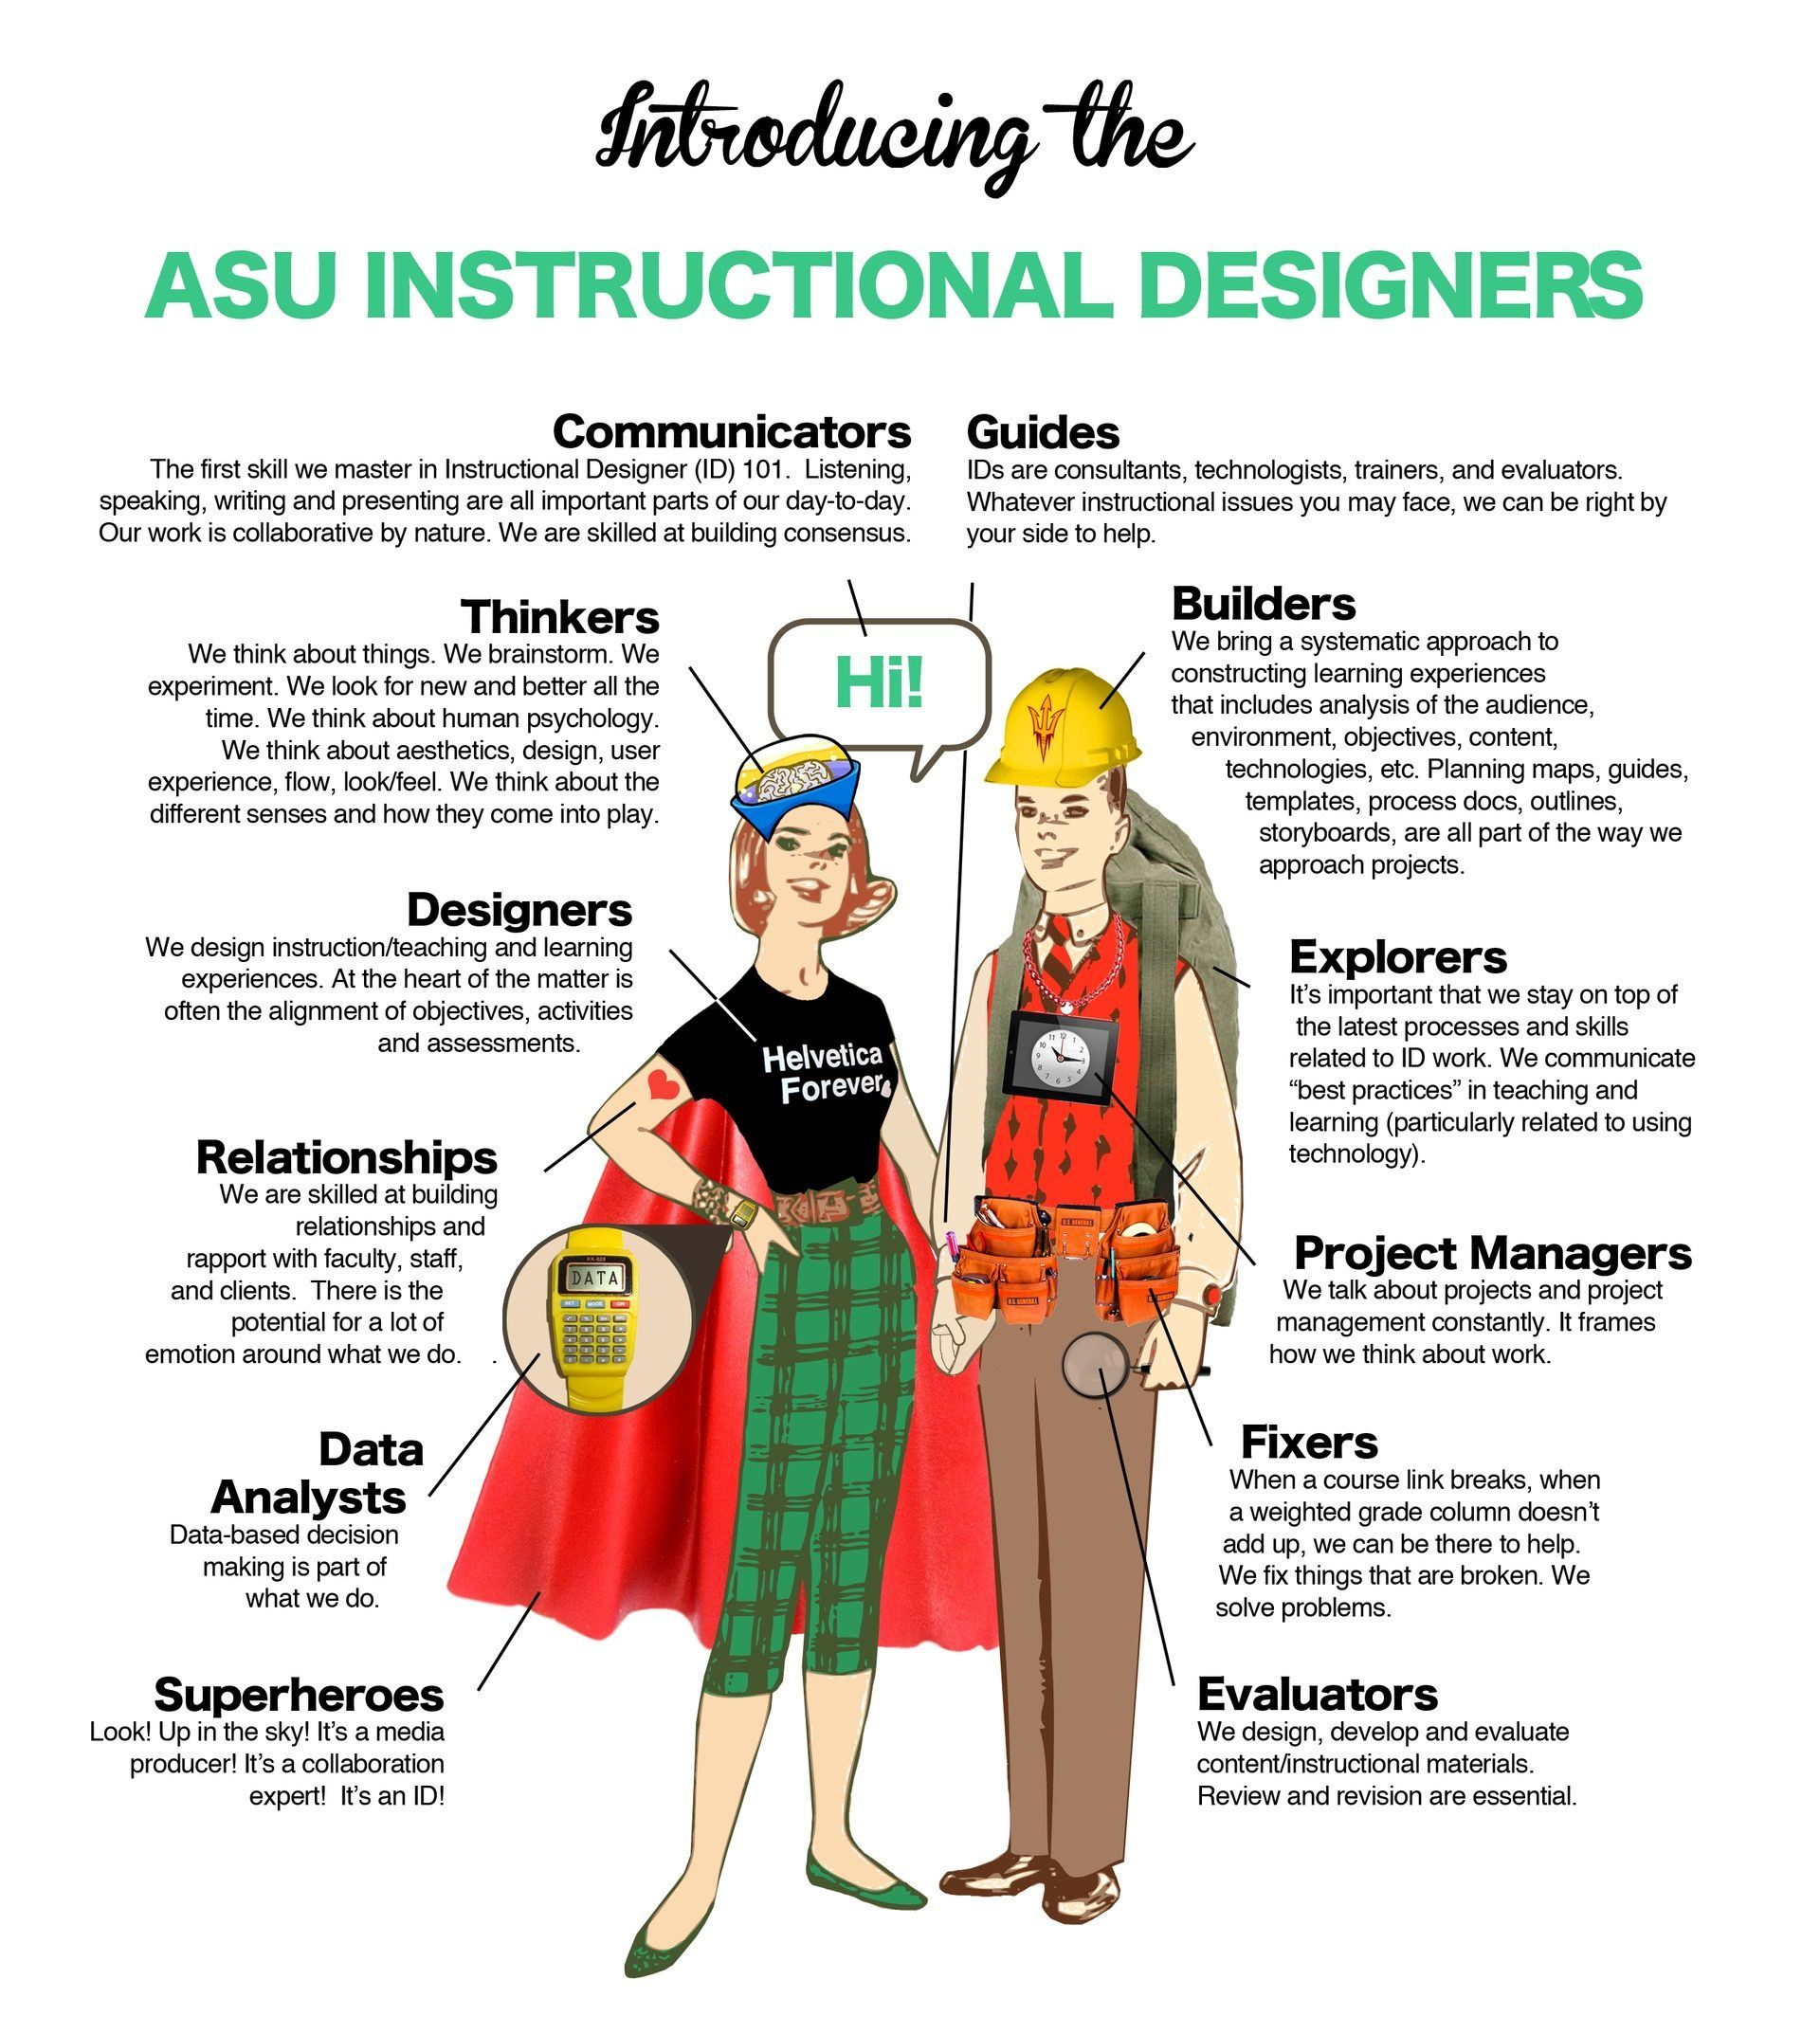 ASU Instructional Designers Infographic